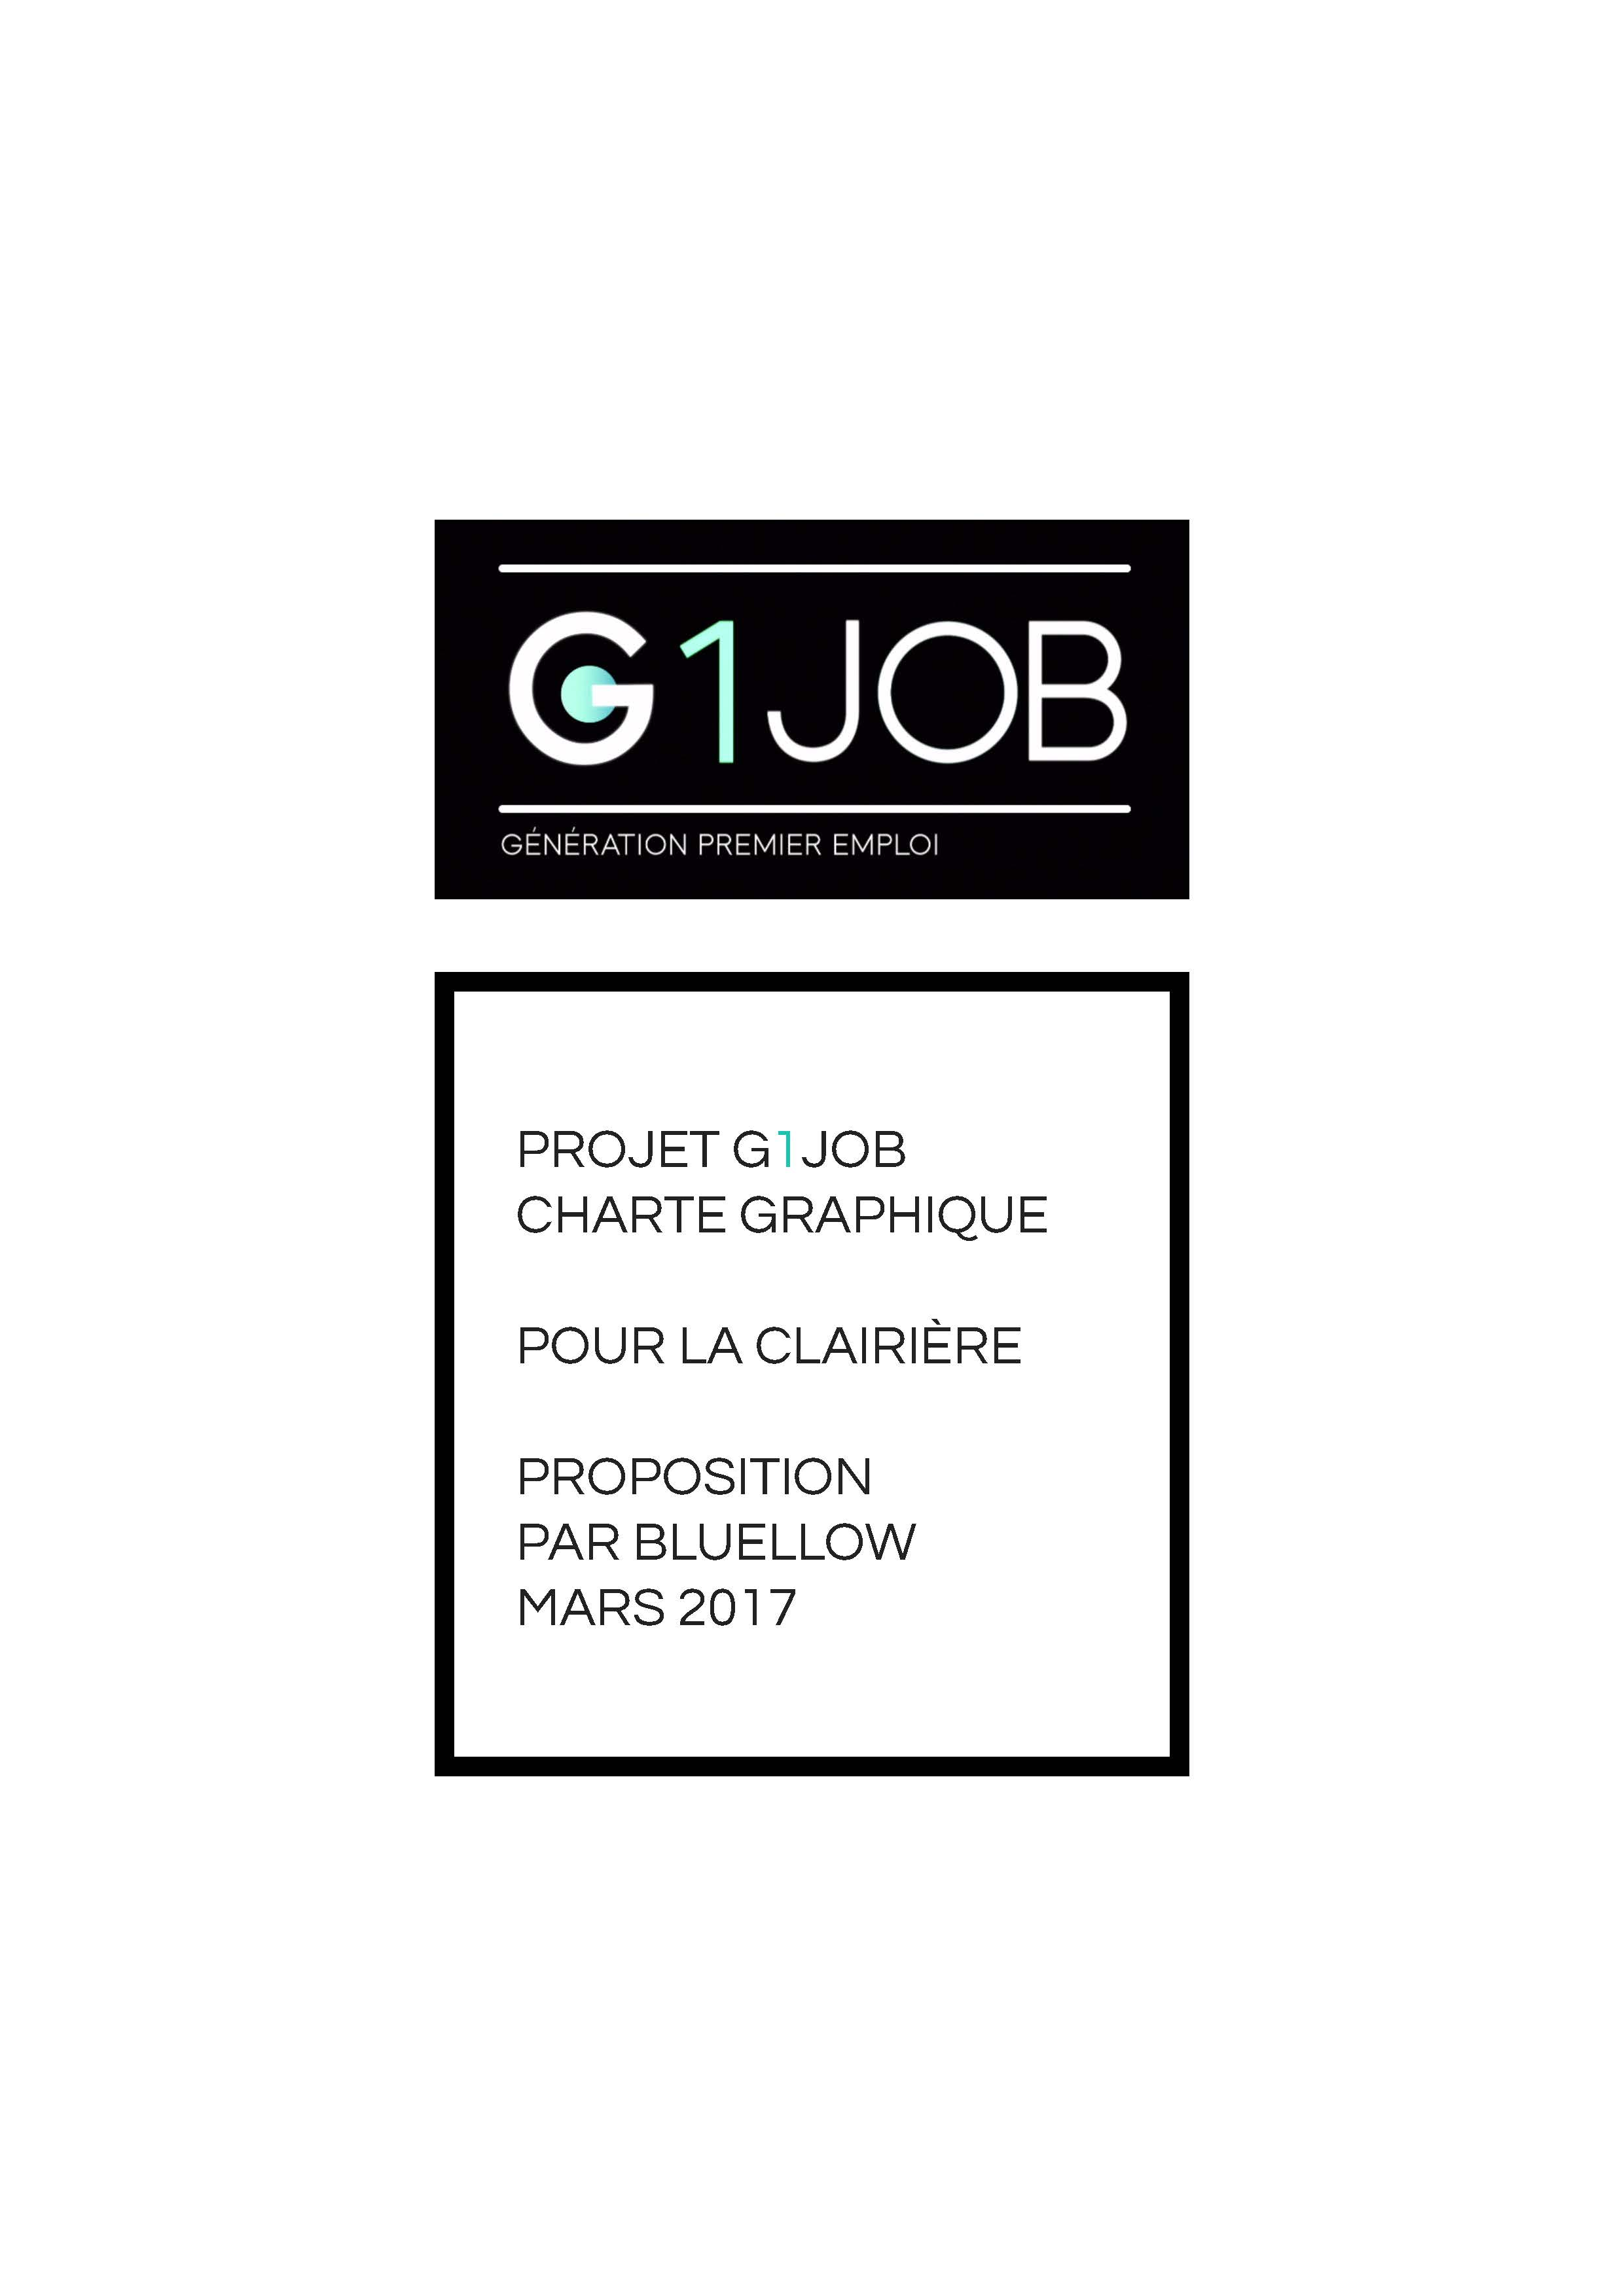 G1JOB Charte graphique_Page_01.jpg